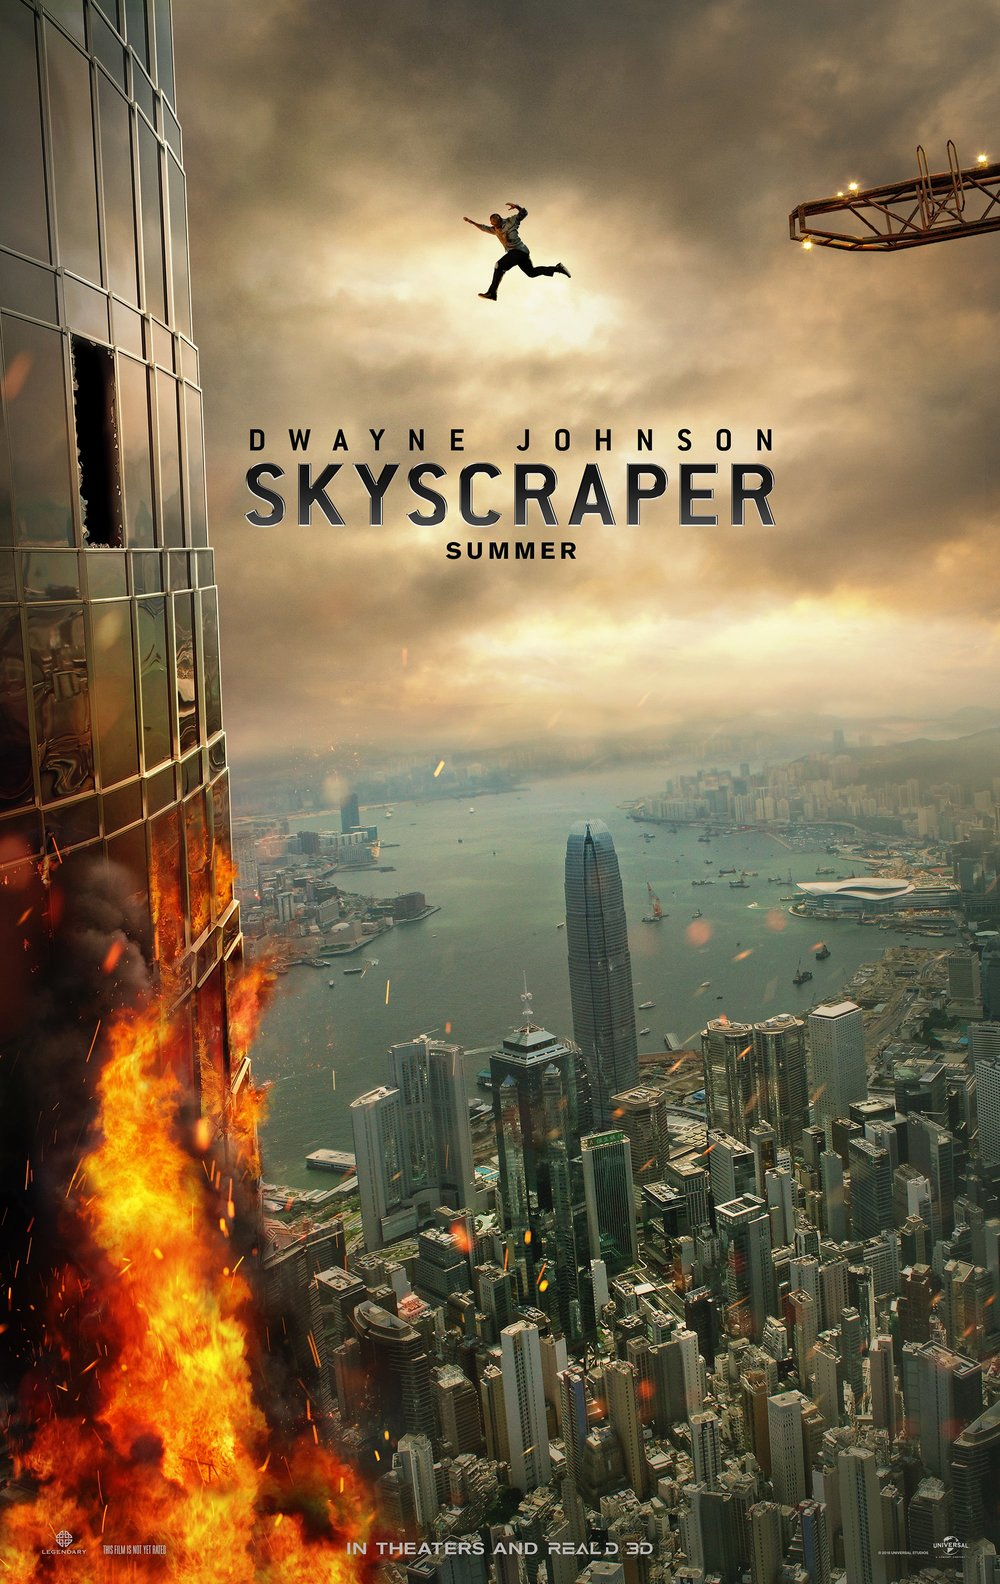 skyscraper-3d-movie.JPG